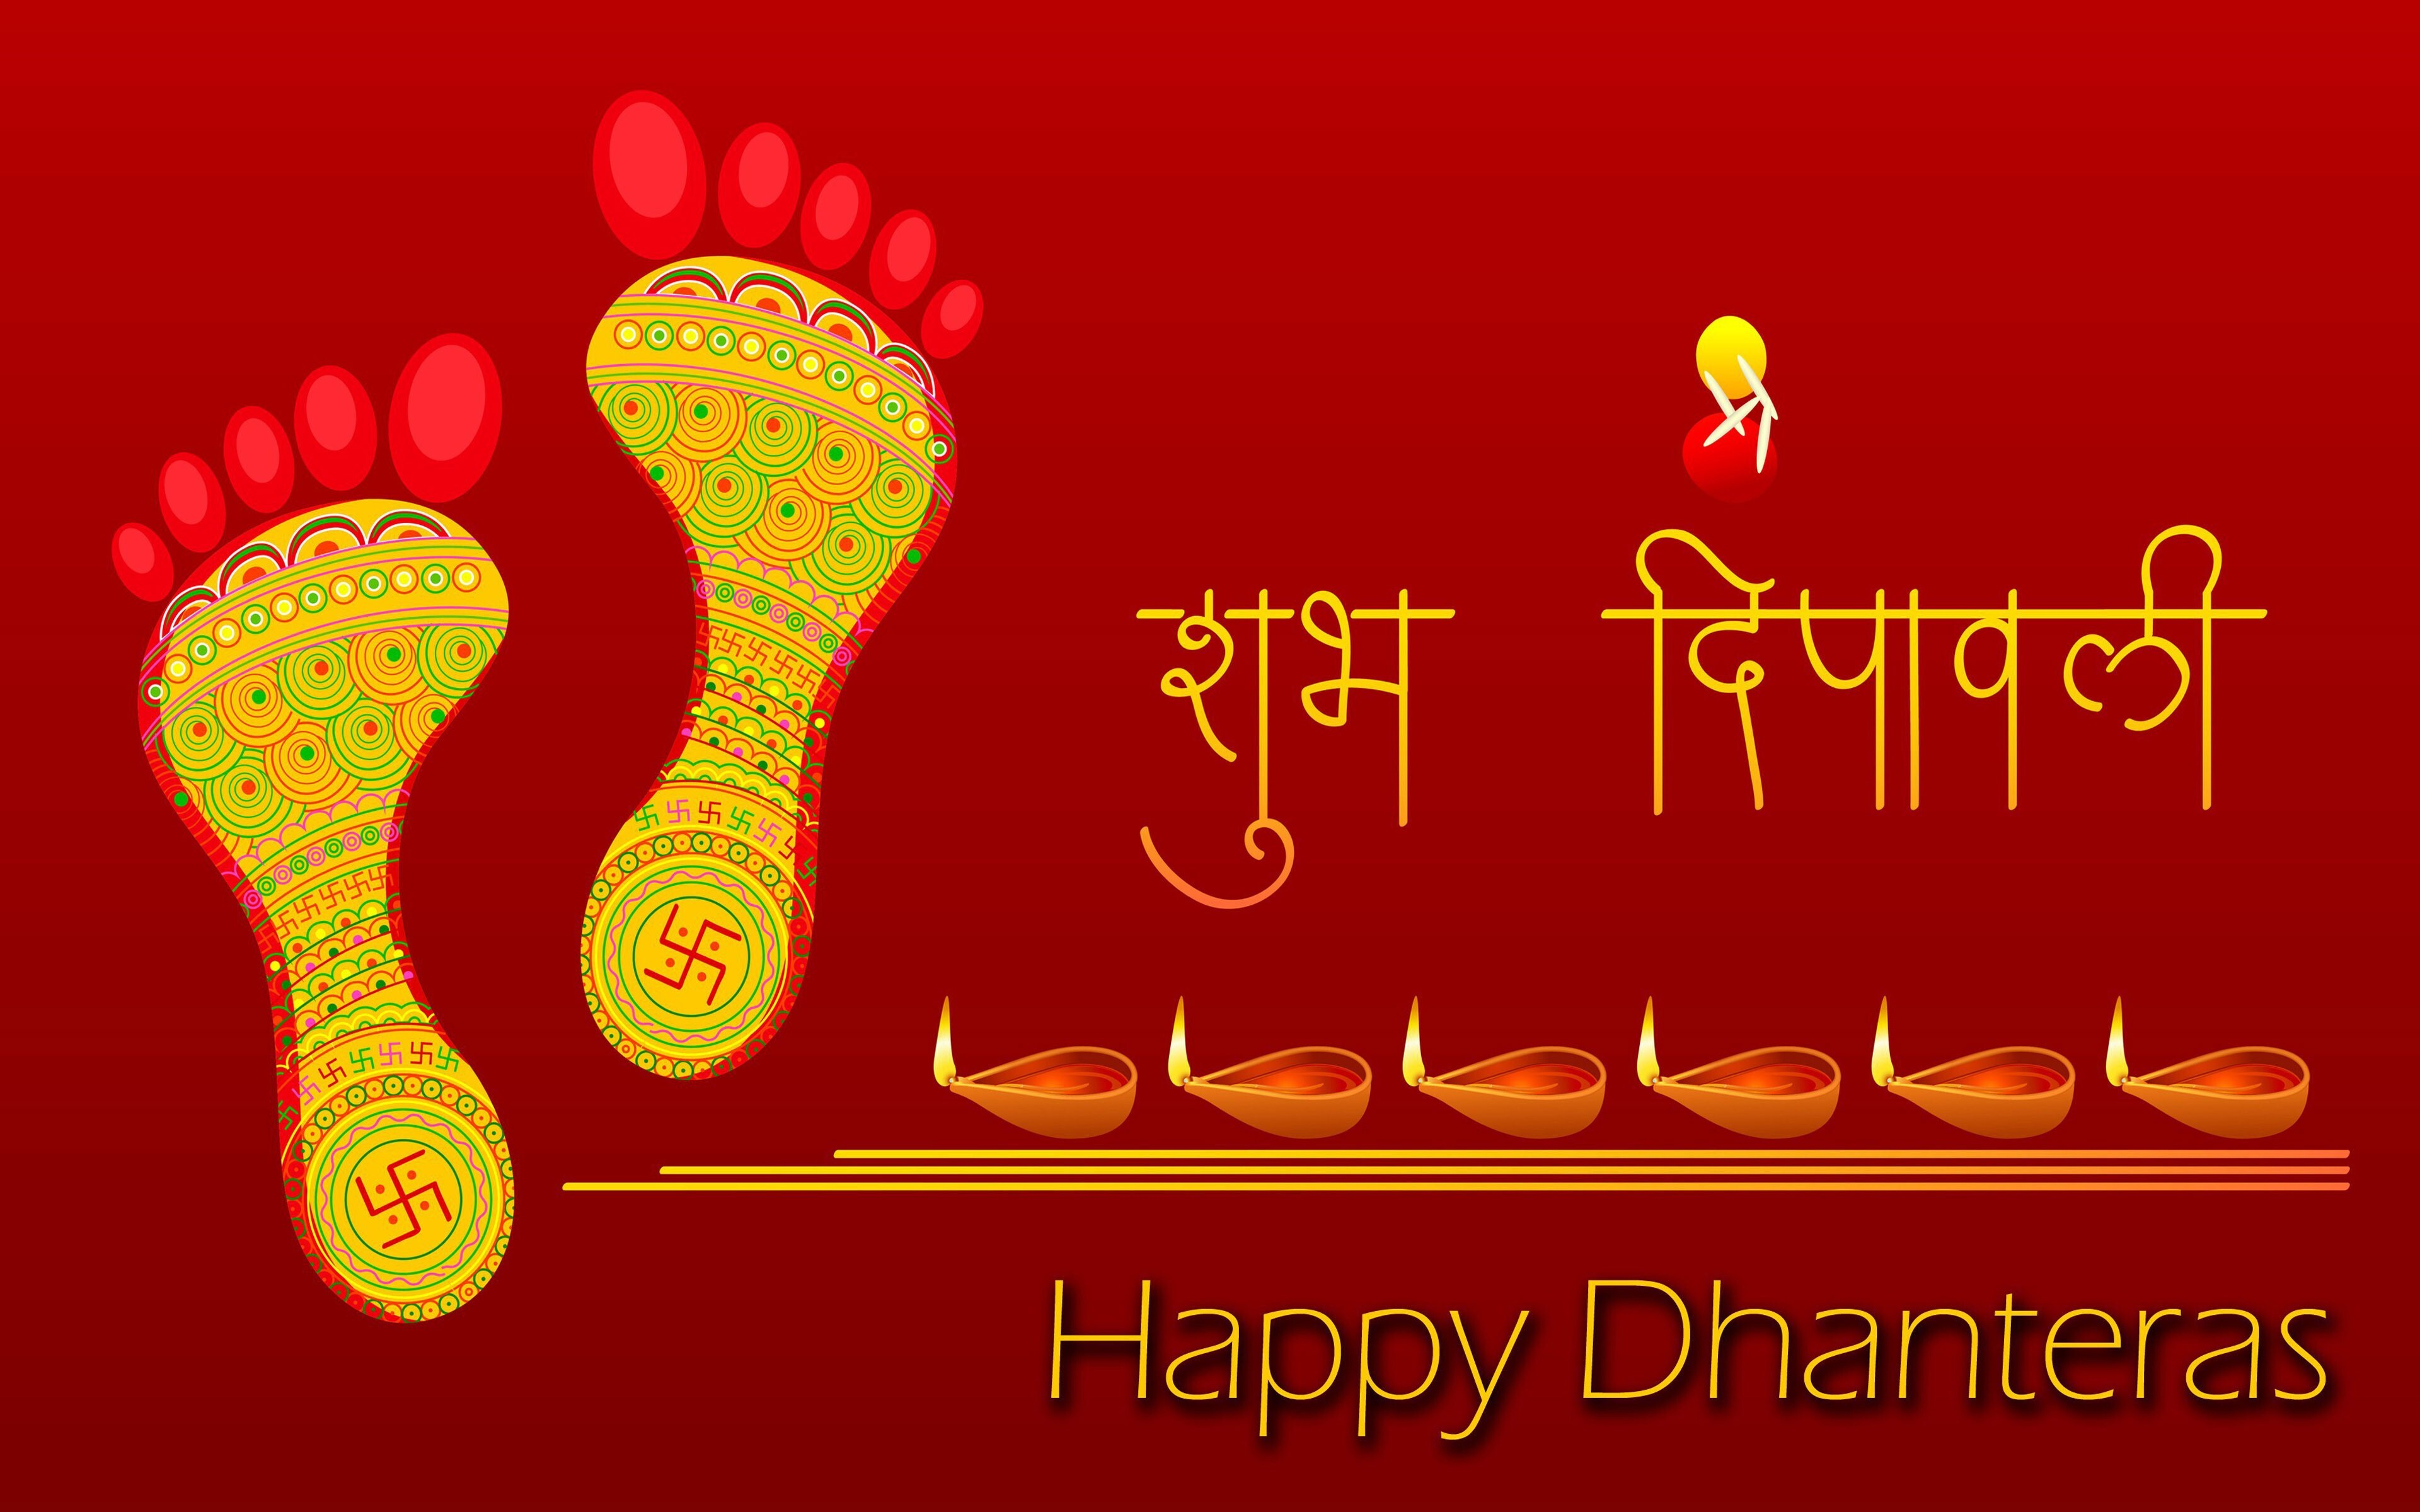 Happy Diwali And Dhanteras Wallpapers: Subh Dipawali And Happy Dhanteras 4K Wallpaper